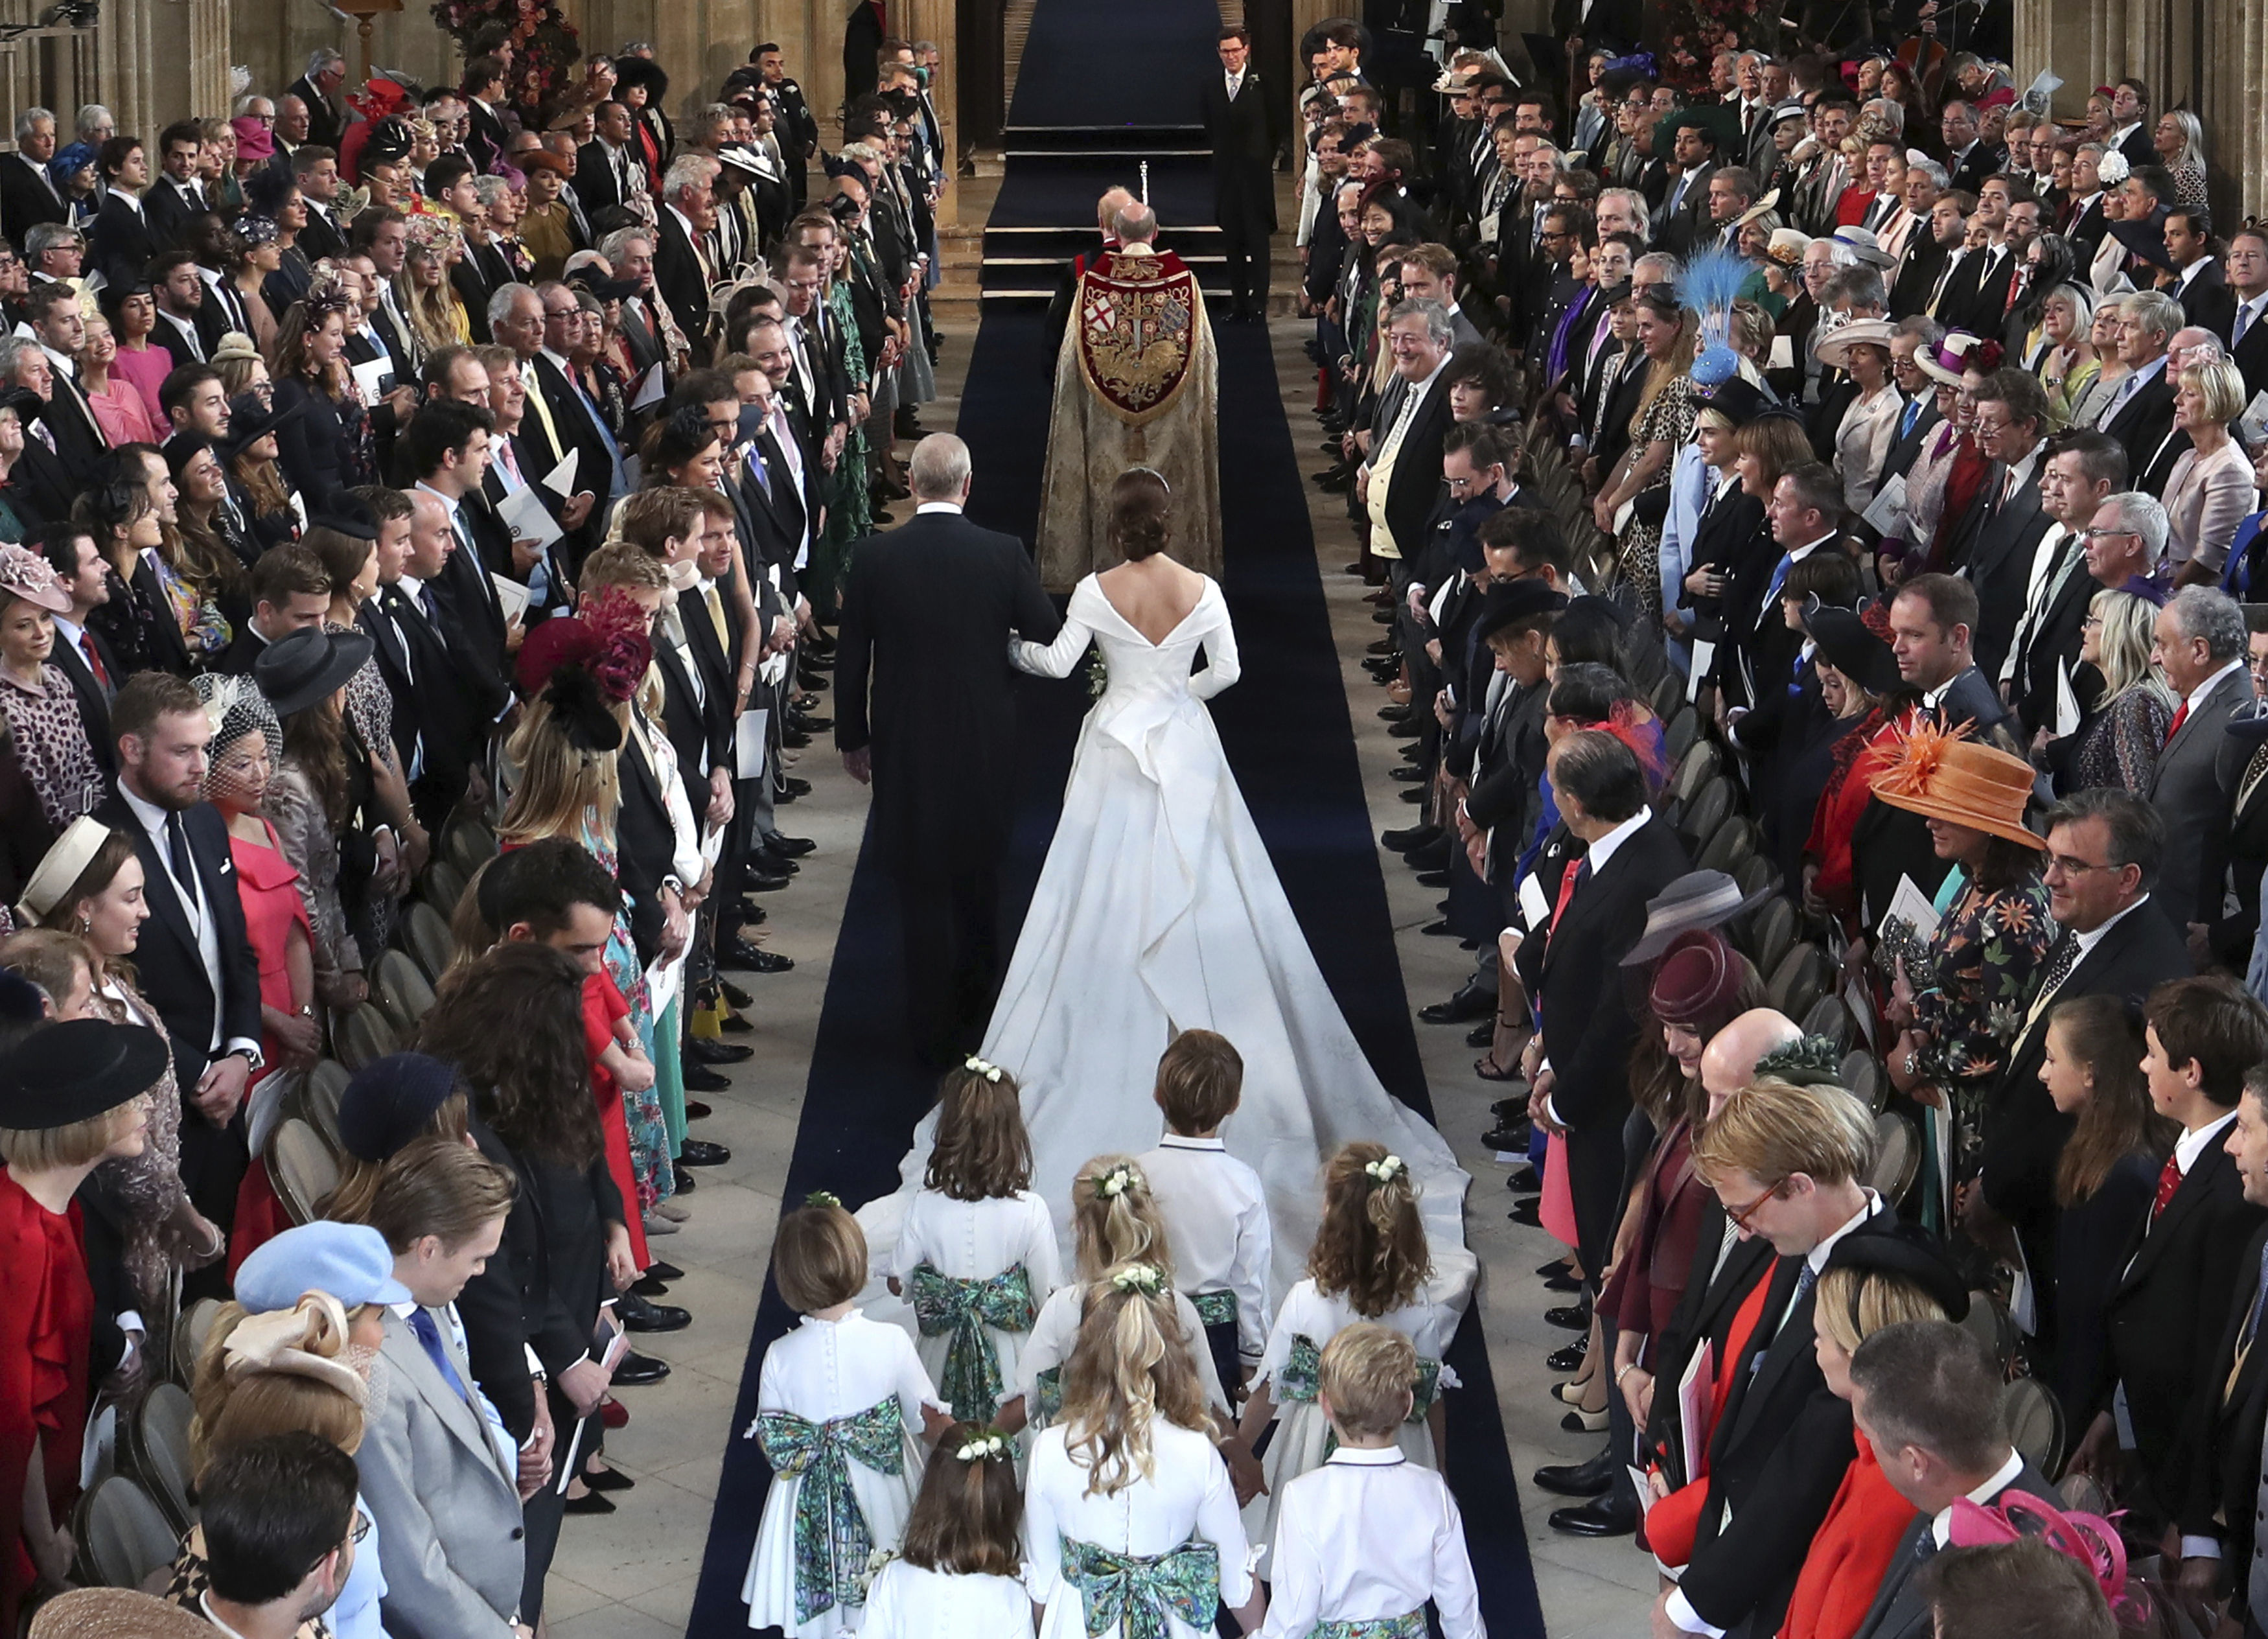 Princess Eugenie walks down the aisle with her father, Prince Andrew. What a